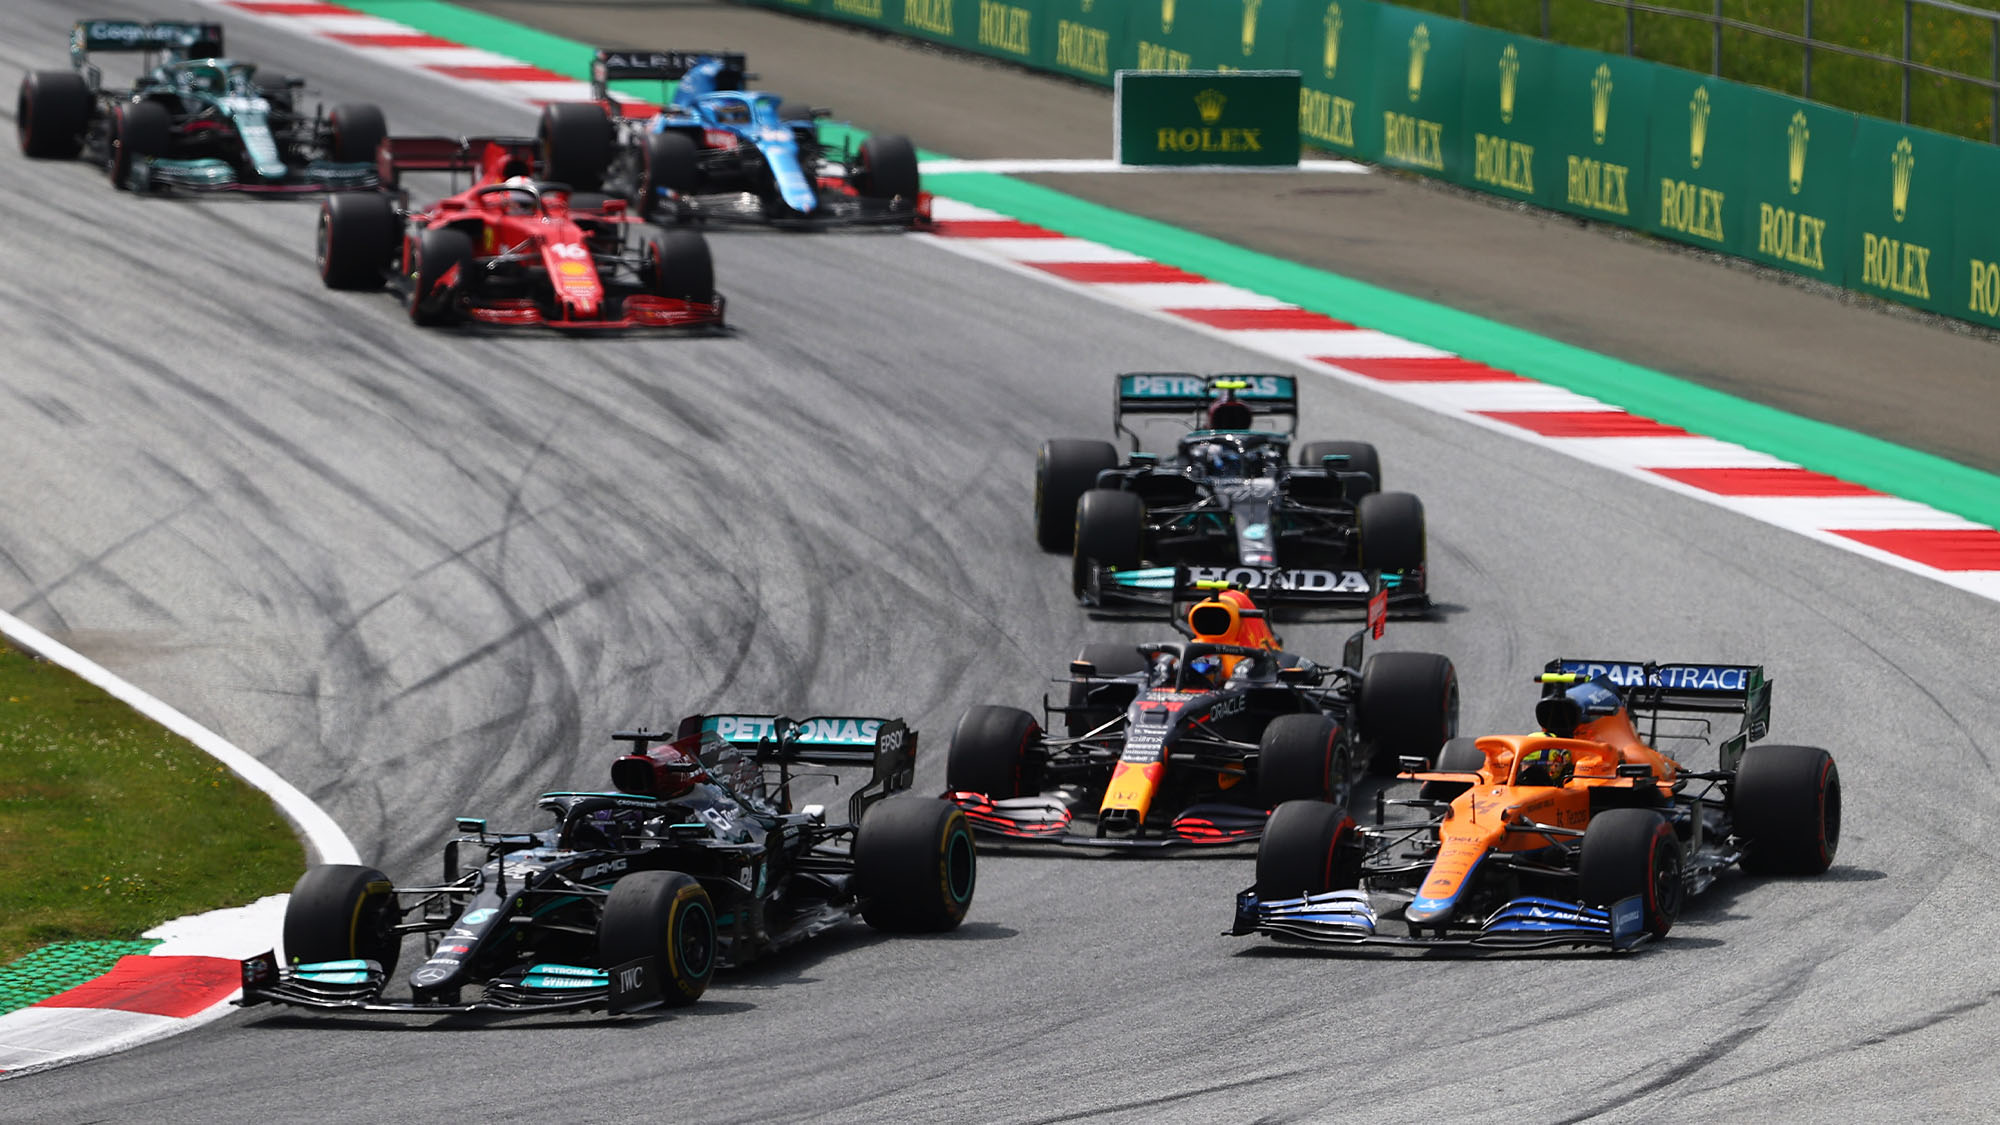 SPIELBERG, AUSTRIA - JUNE 27: Lewis Hamilton of Great Britain driving the (44) Mercedes AMG Petronas F1 Team Mercedes W12 leads Lando Norris of Great Britain driving the (4) McLaren F1 Team MCL35M Mercedes during the F1 Grand Prix of Styria at Red Bull Ring on June 27, 2021 in Spielberg, Austria. (Photo by Clive Rose/Getty Images)